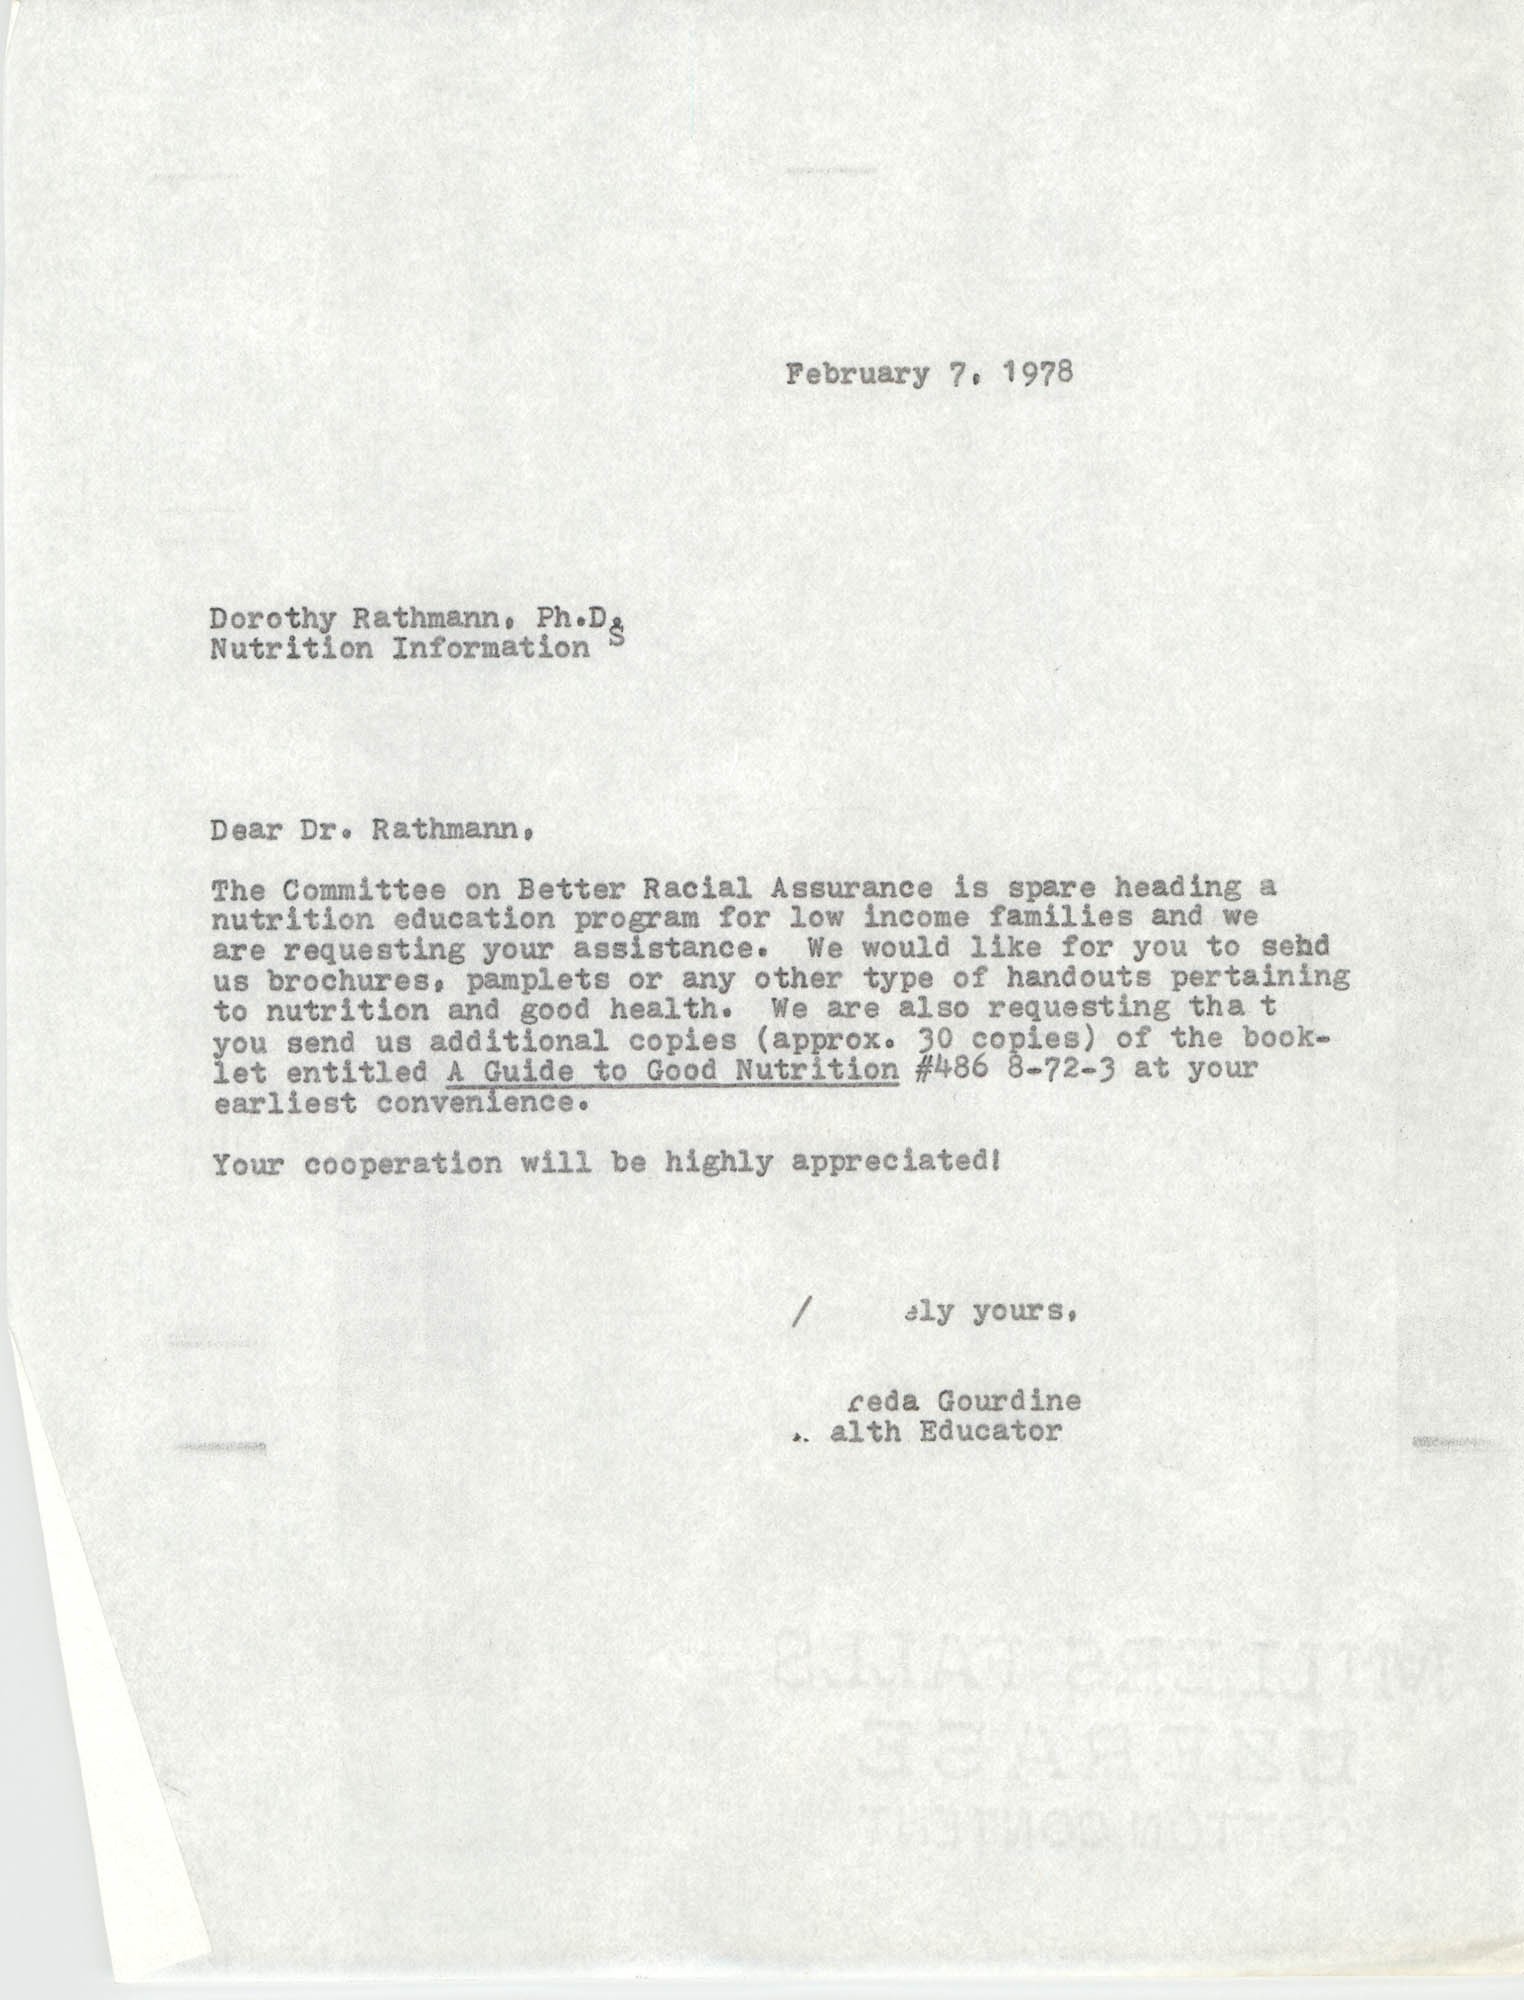 Letter from Alfreda Gourdine to Dorothy Rathmann, February 7, 1978